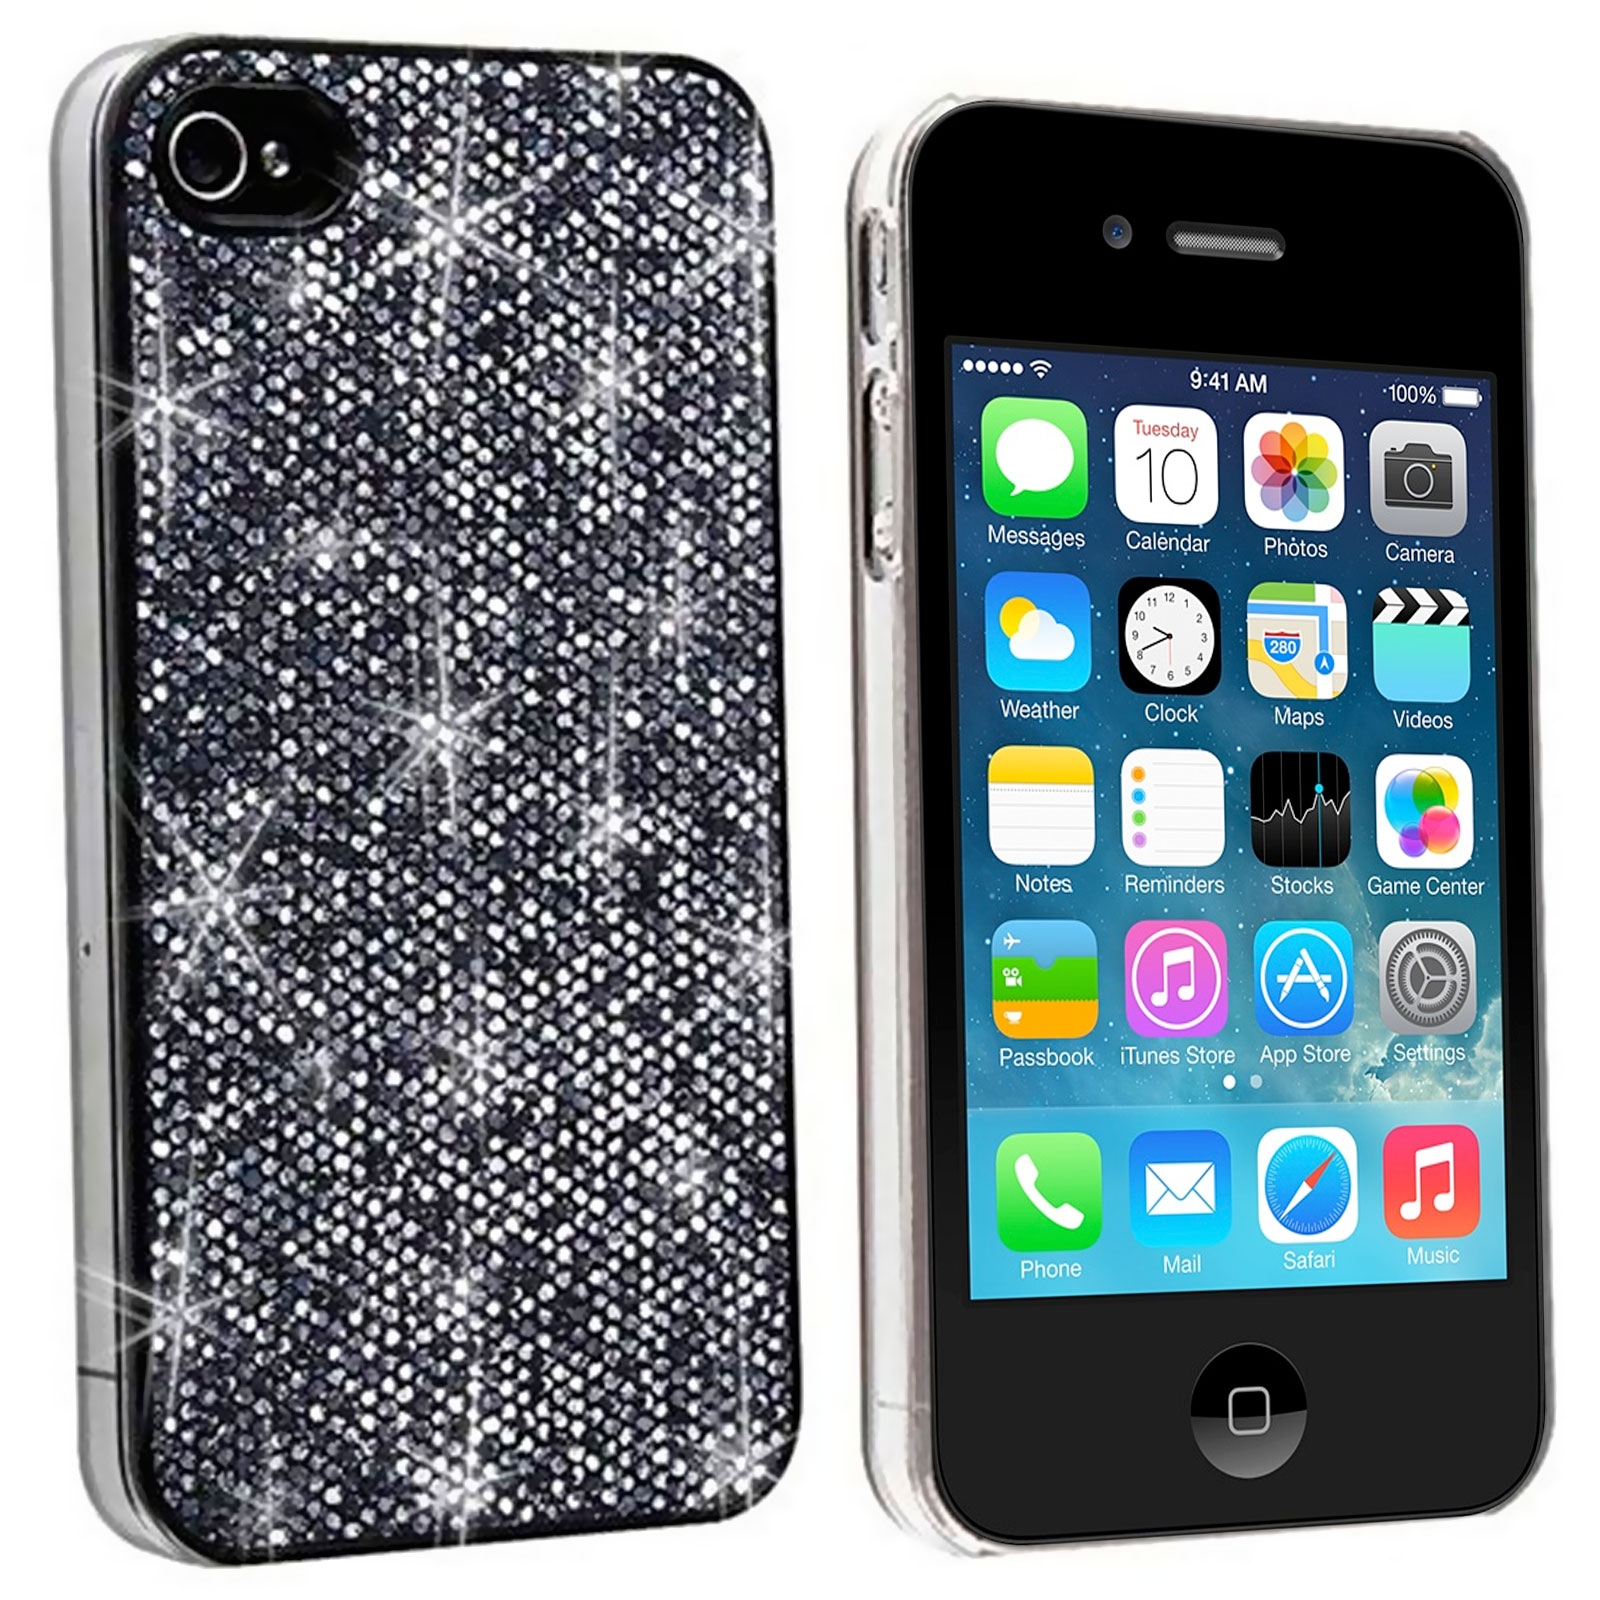 coque luxe strass paillettes noire iphone 4s 4. Black Bedroom Furniture Sets. Home Design Ideas